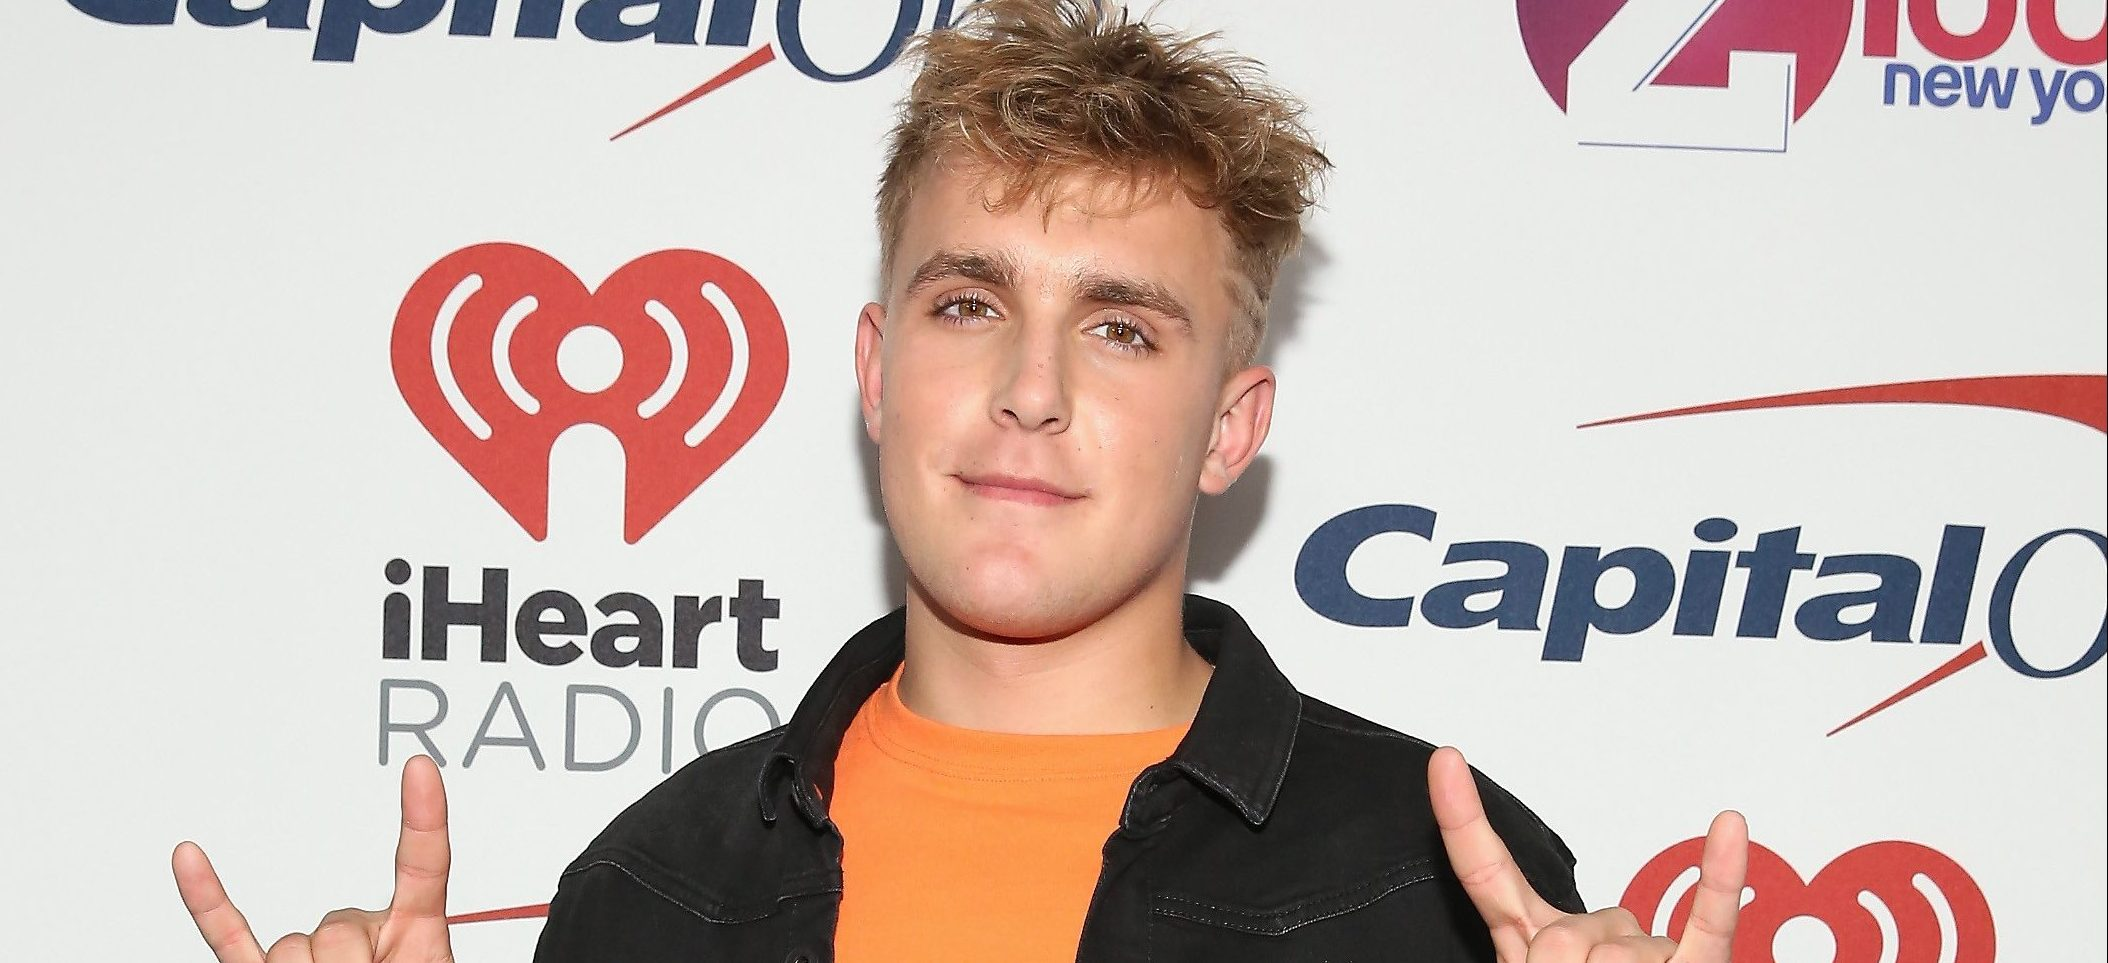 Jake Paul is being sued over security team 'placing neighbour under citizen's arrest'